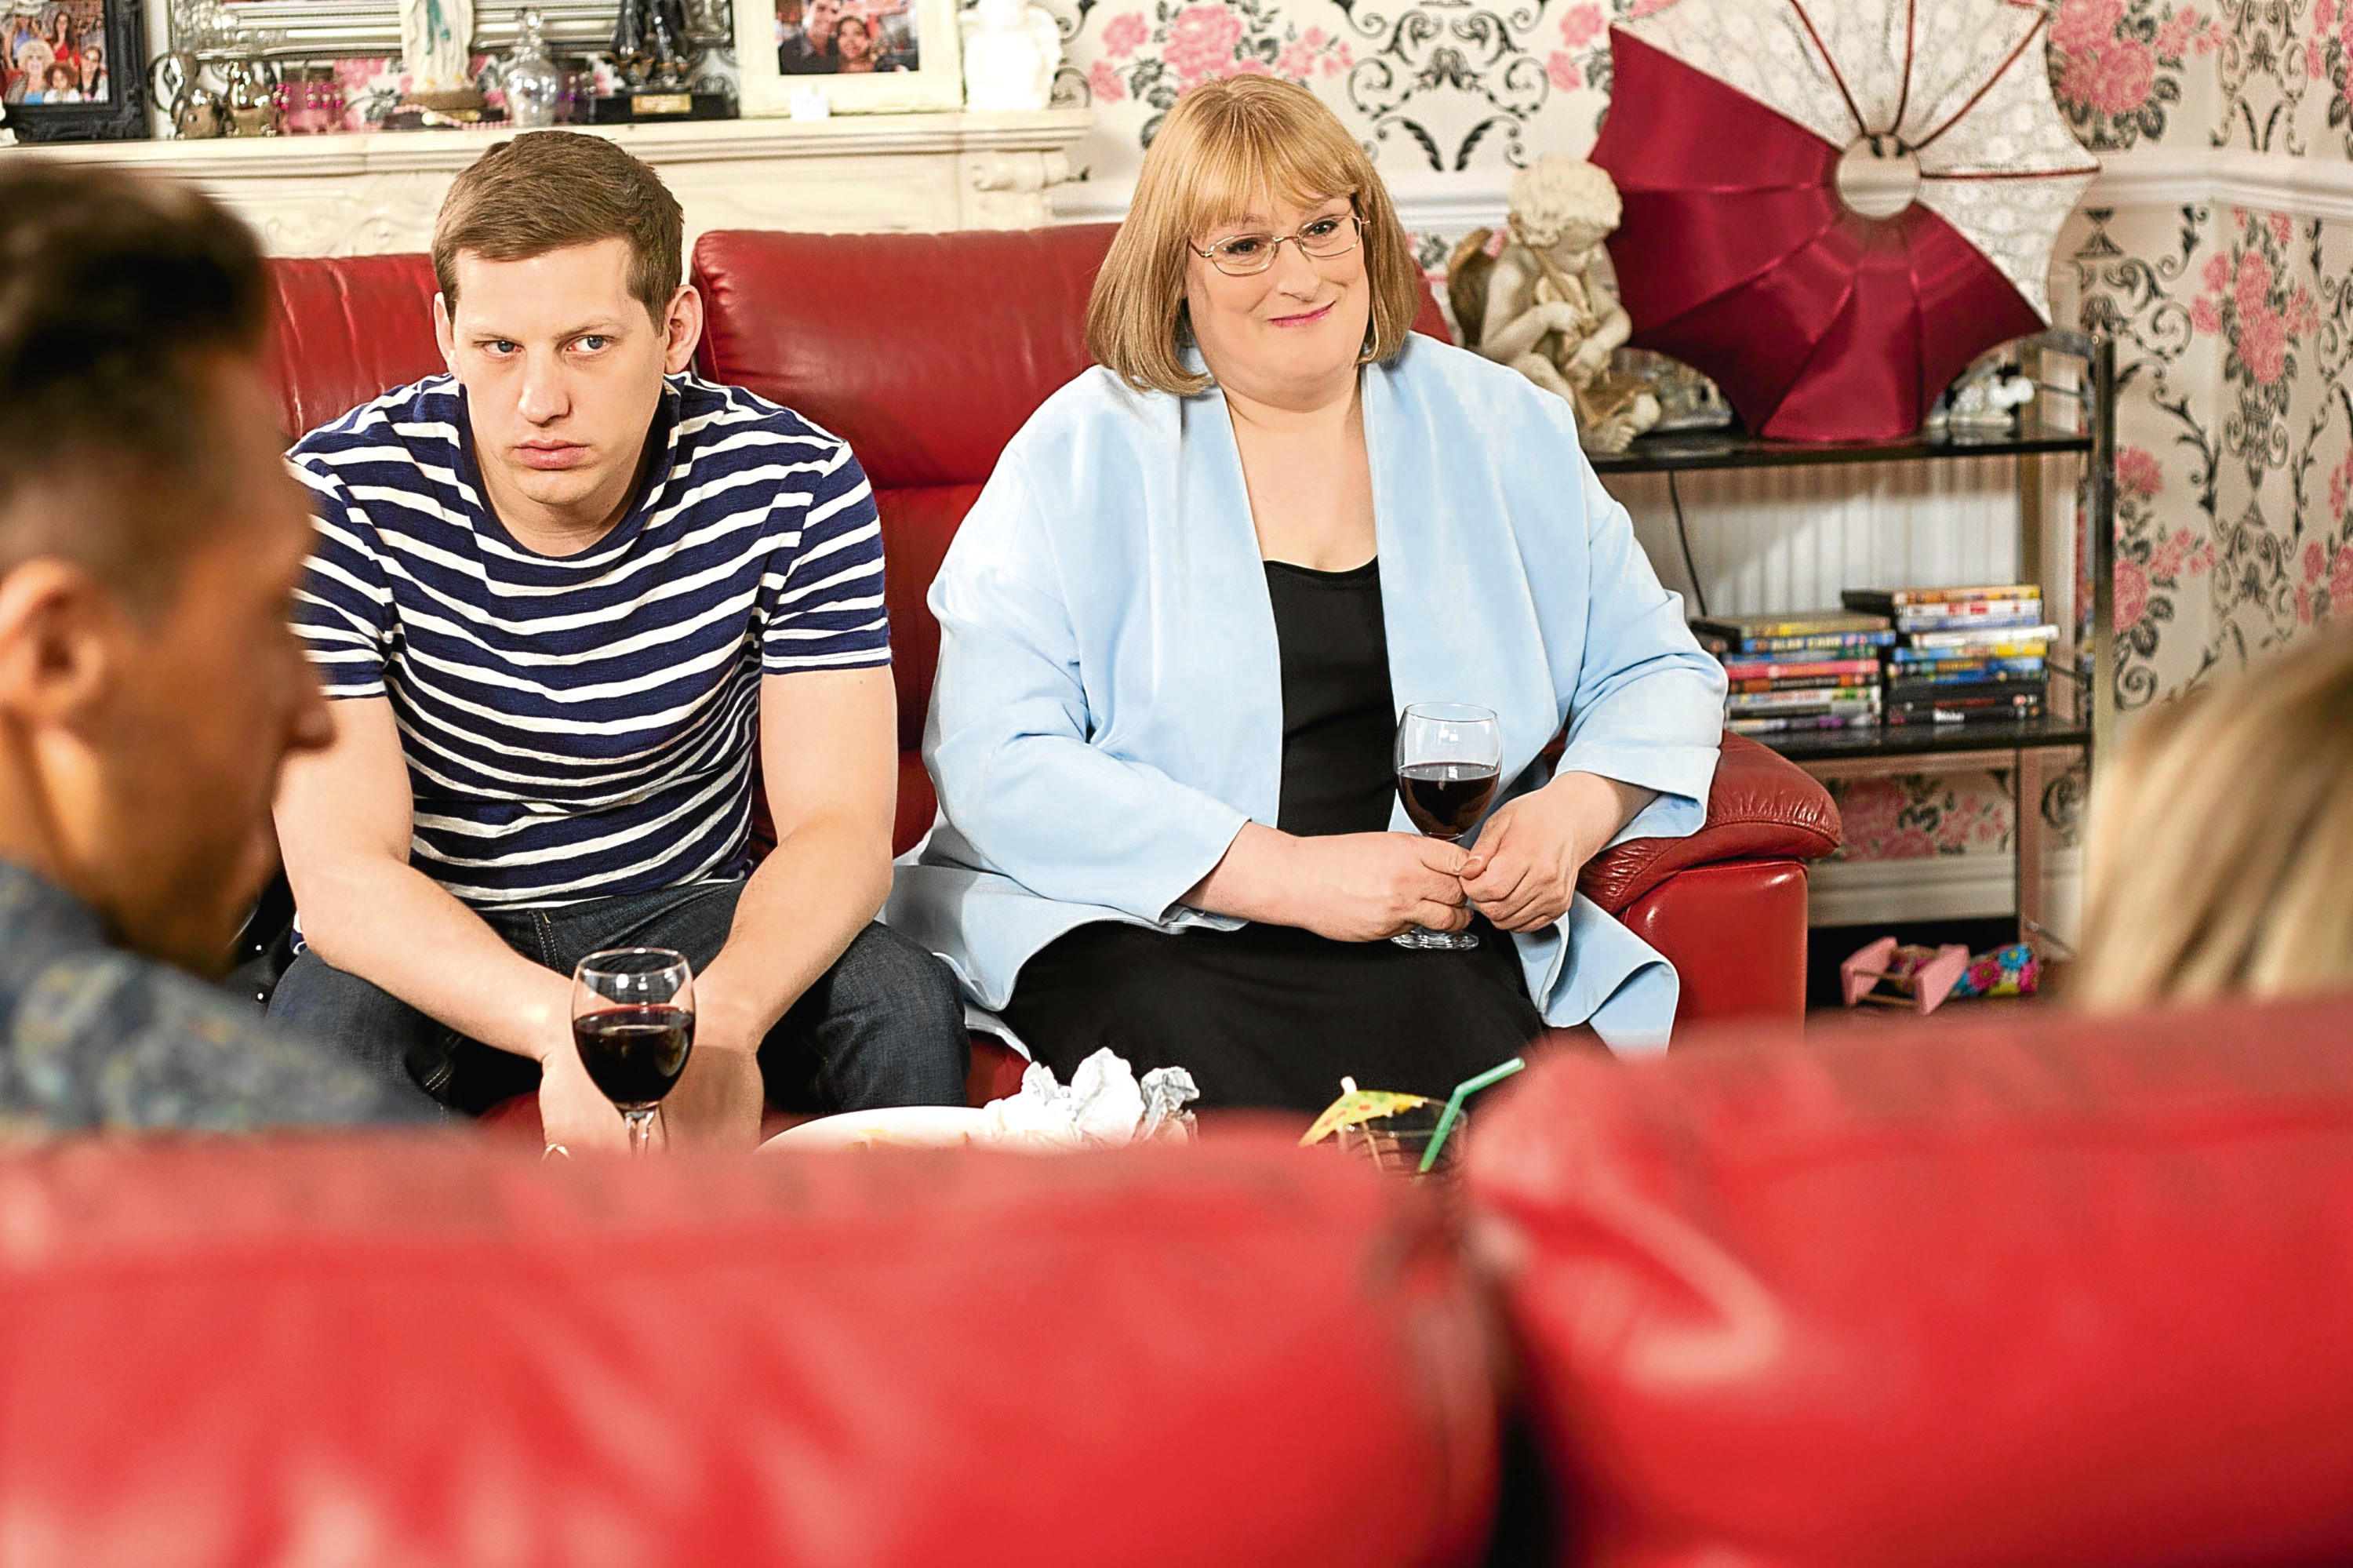 Annie Wallace is a Scottish actress from Aberdeen known for playing Sally St. Claire in the Channel 4 soap opera Hollyoaks